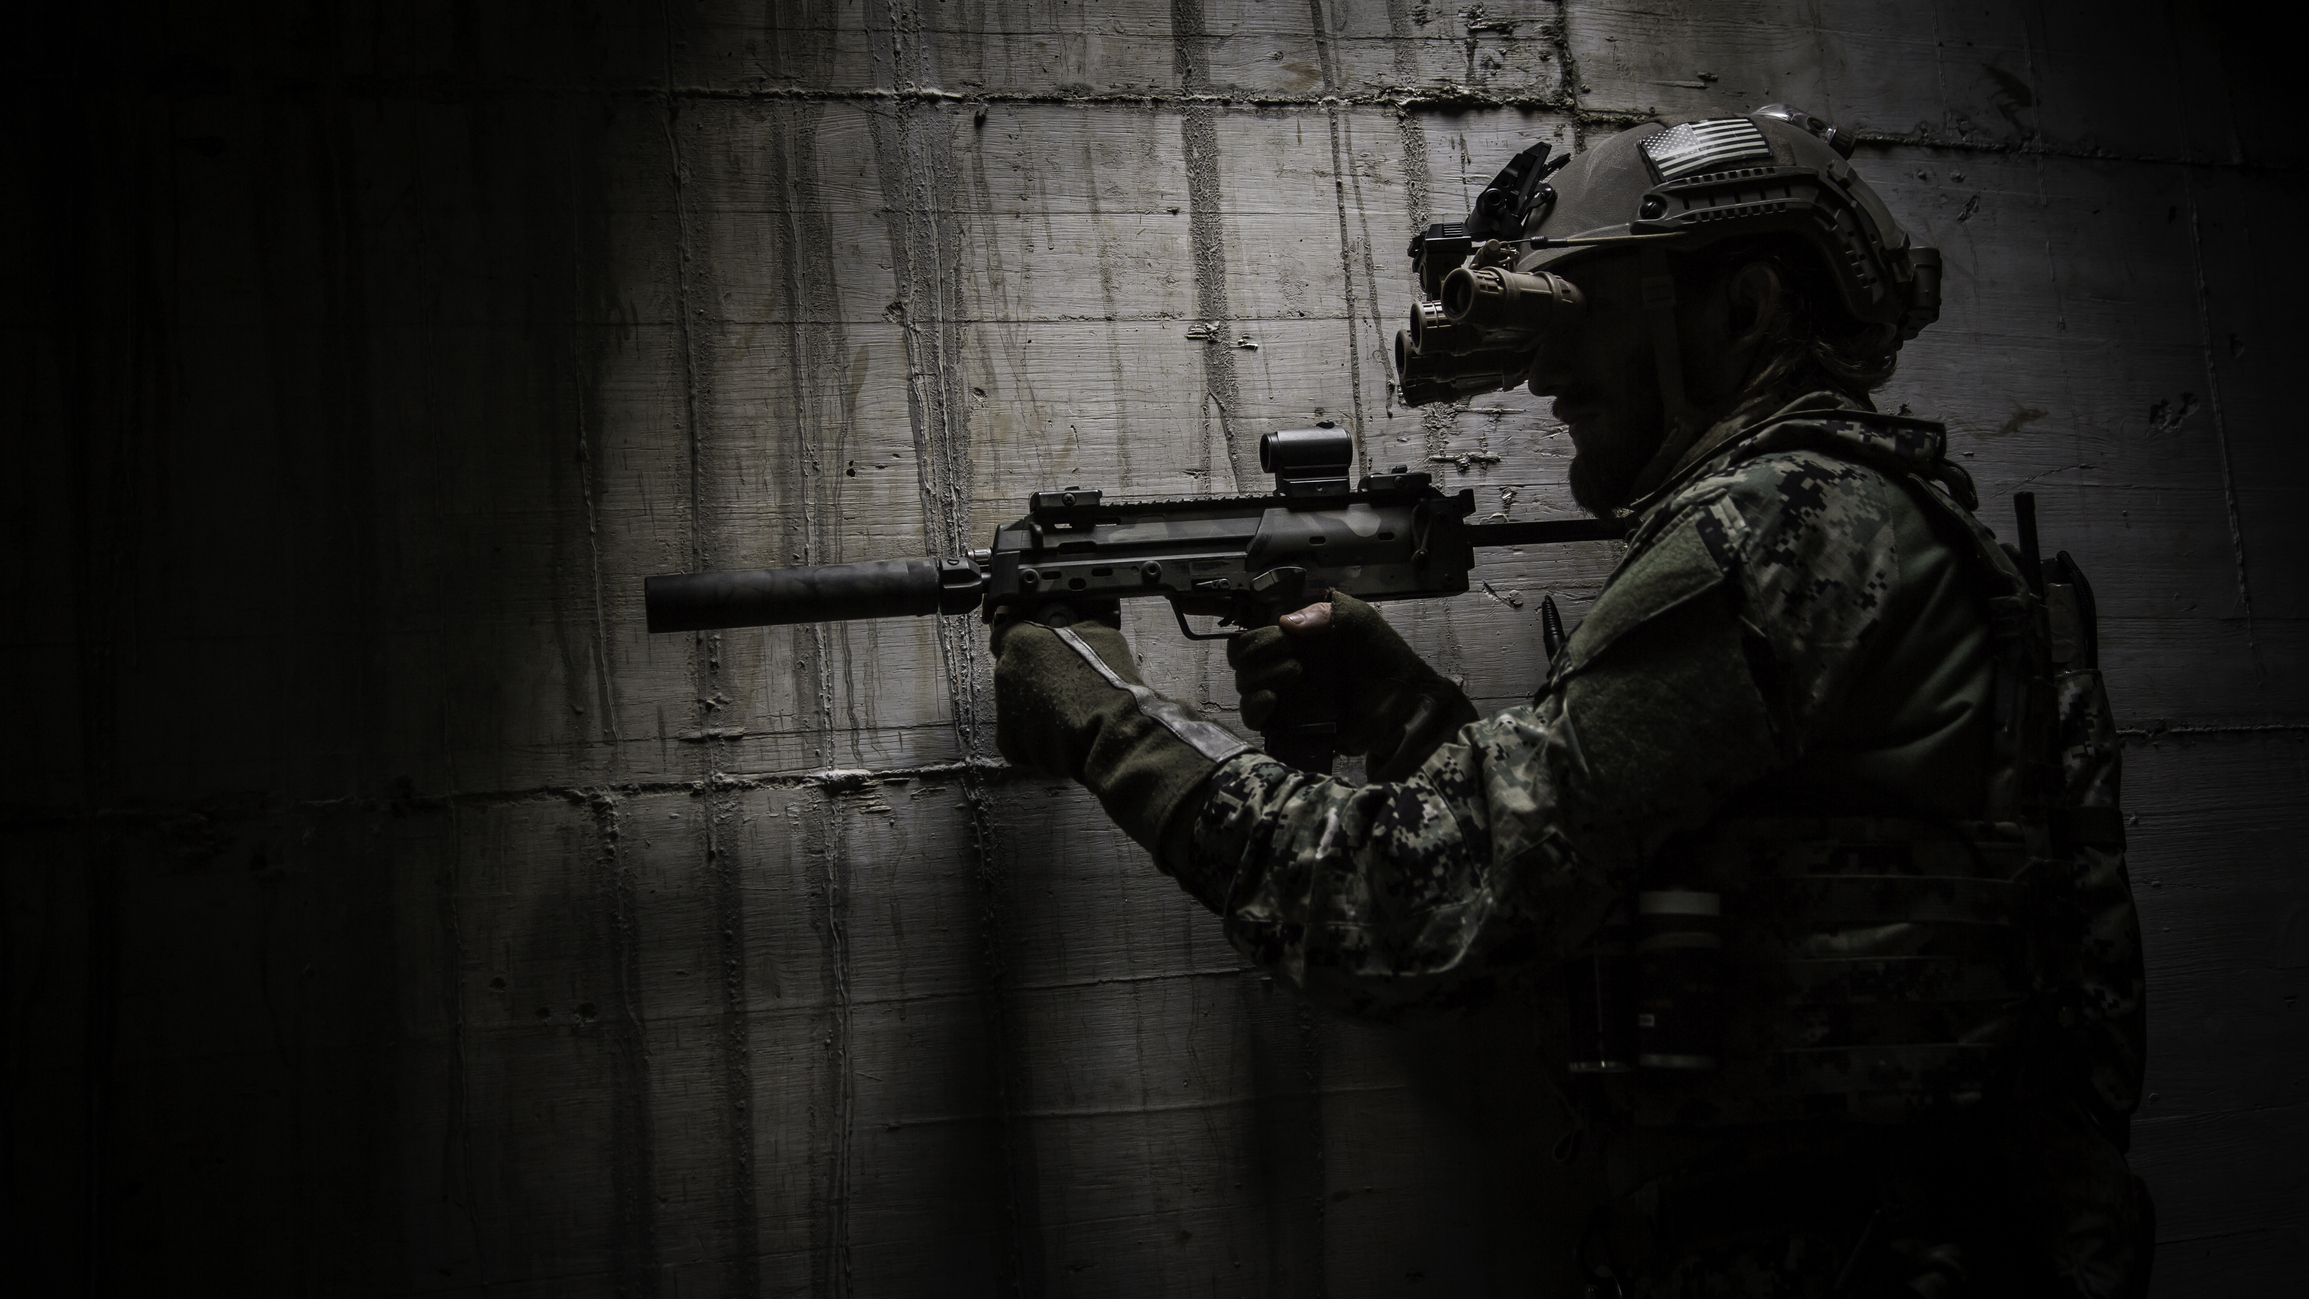 A Combat Ready Special Operation Forces Soldier With MP7 Silenced Submachine Gun And Night